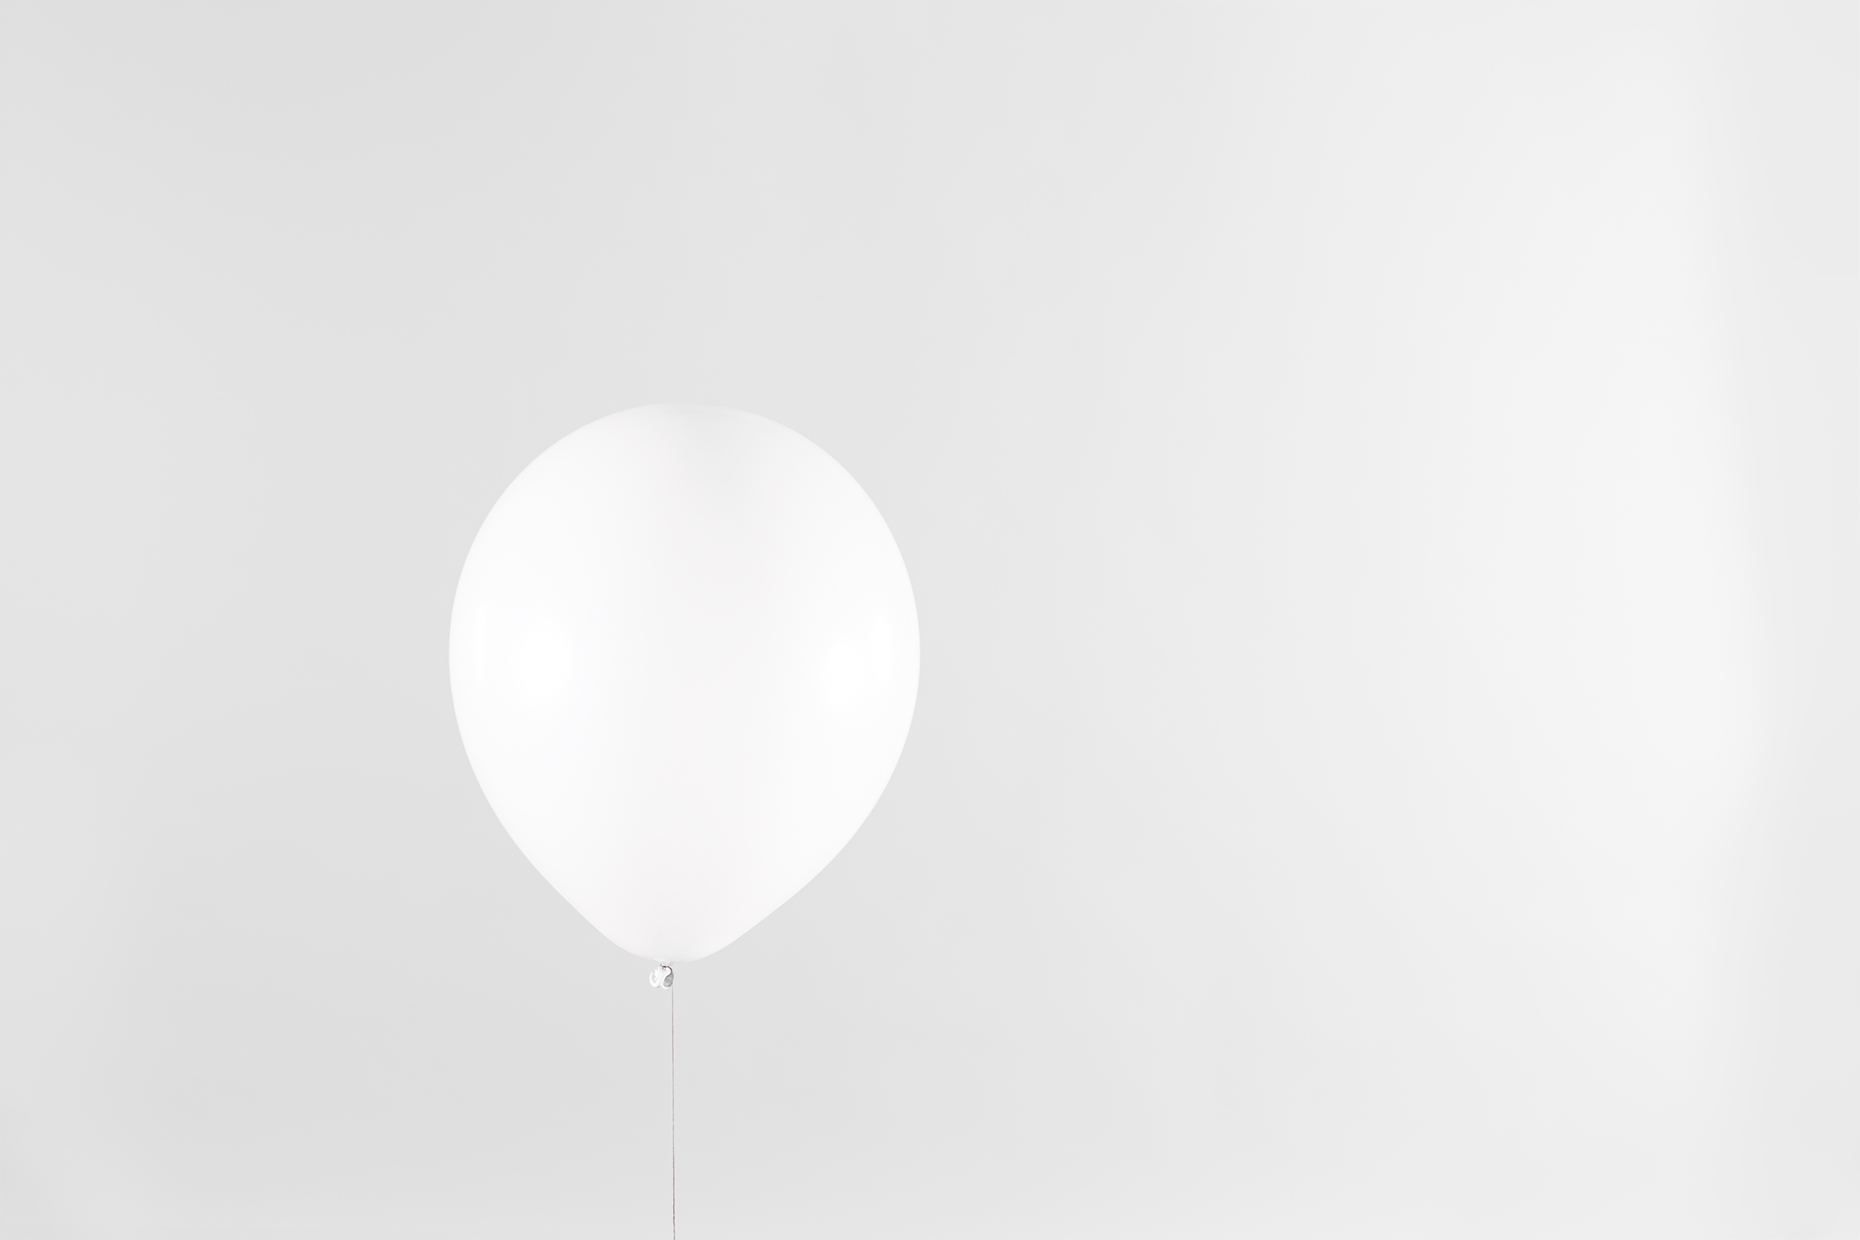 1_WhiteonWhite_Balloon